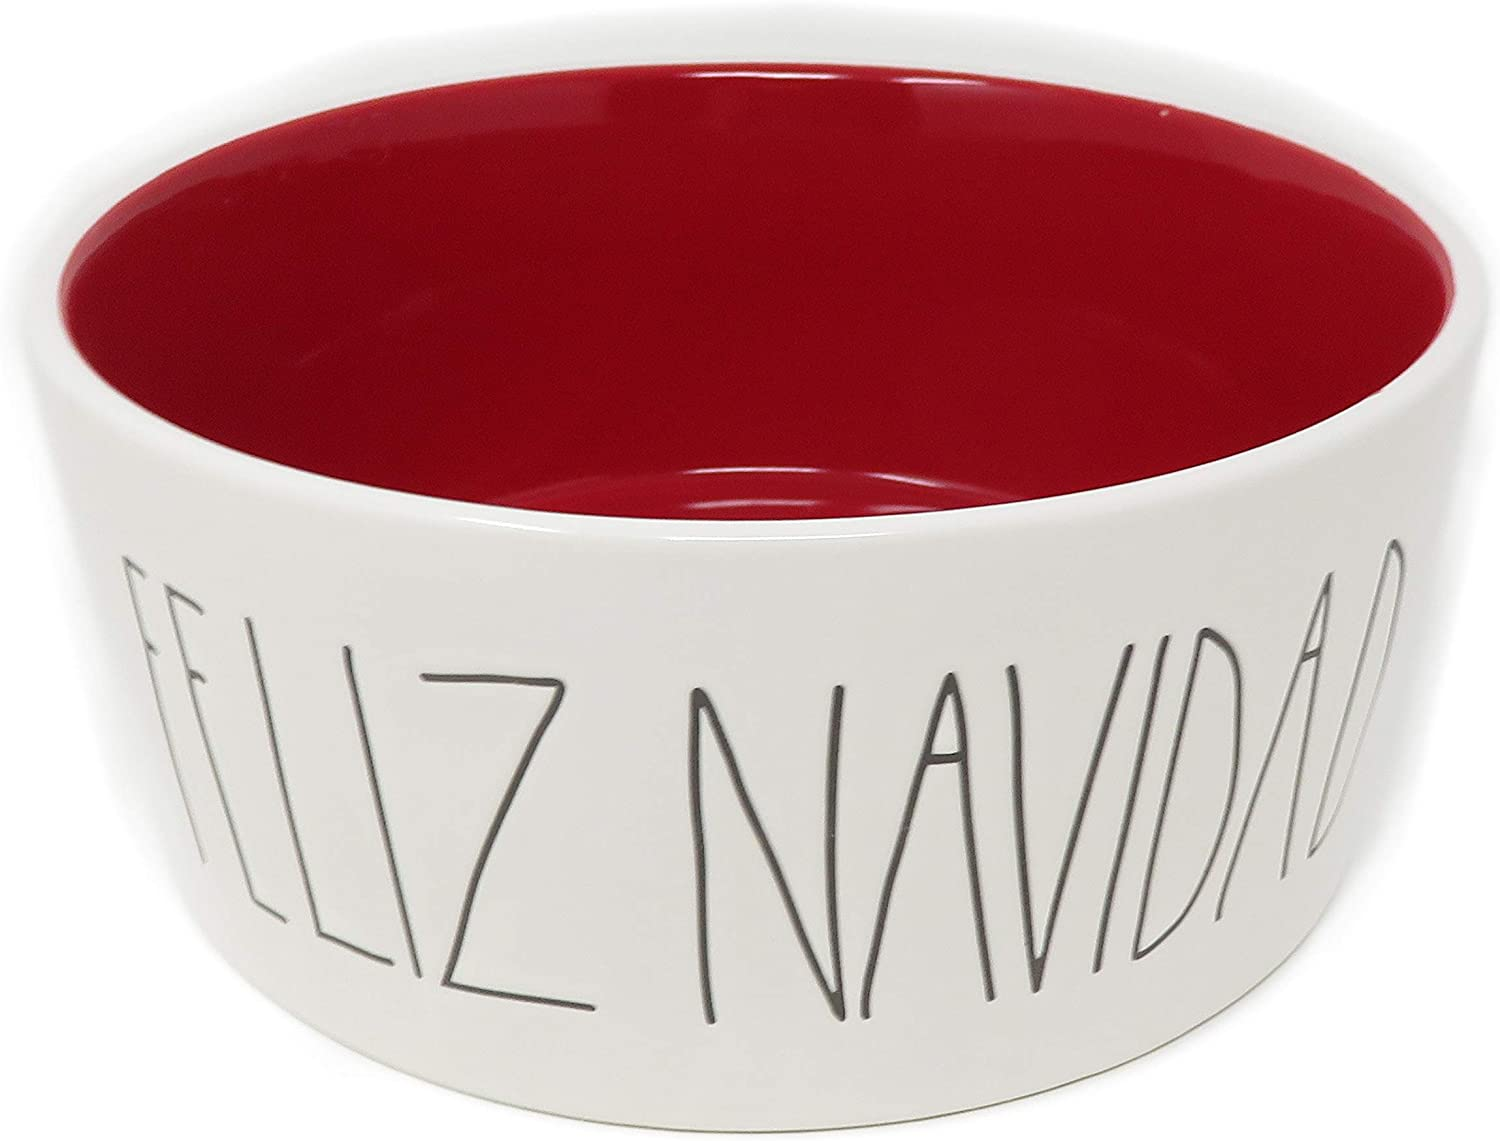 Rae Dun Magenta Christmas Ceramic Pet Dog Feeding Bowl Feliz Navidad   Extra Large  Diameter  8 inch   Red Interior